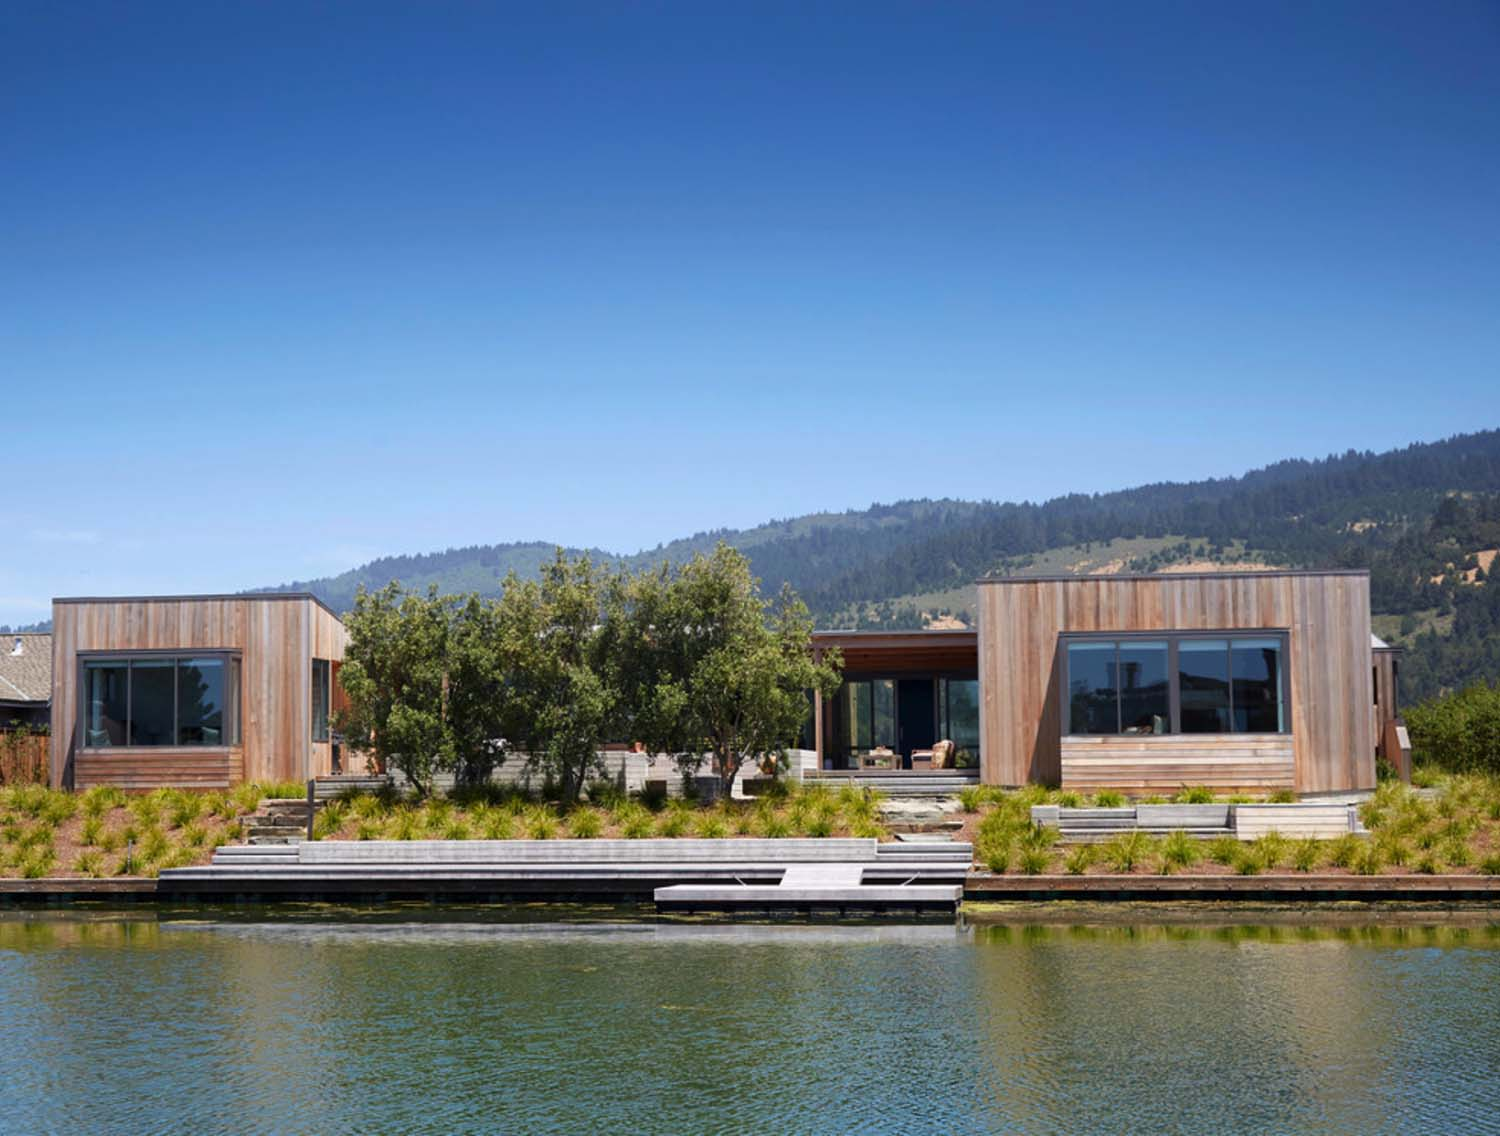 stinson-beach-lagoon-residence-turnbull-griffin-haesloop-01-1-kindesign